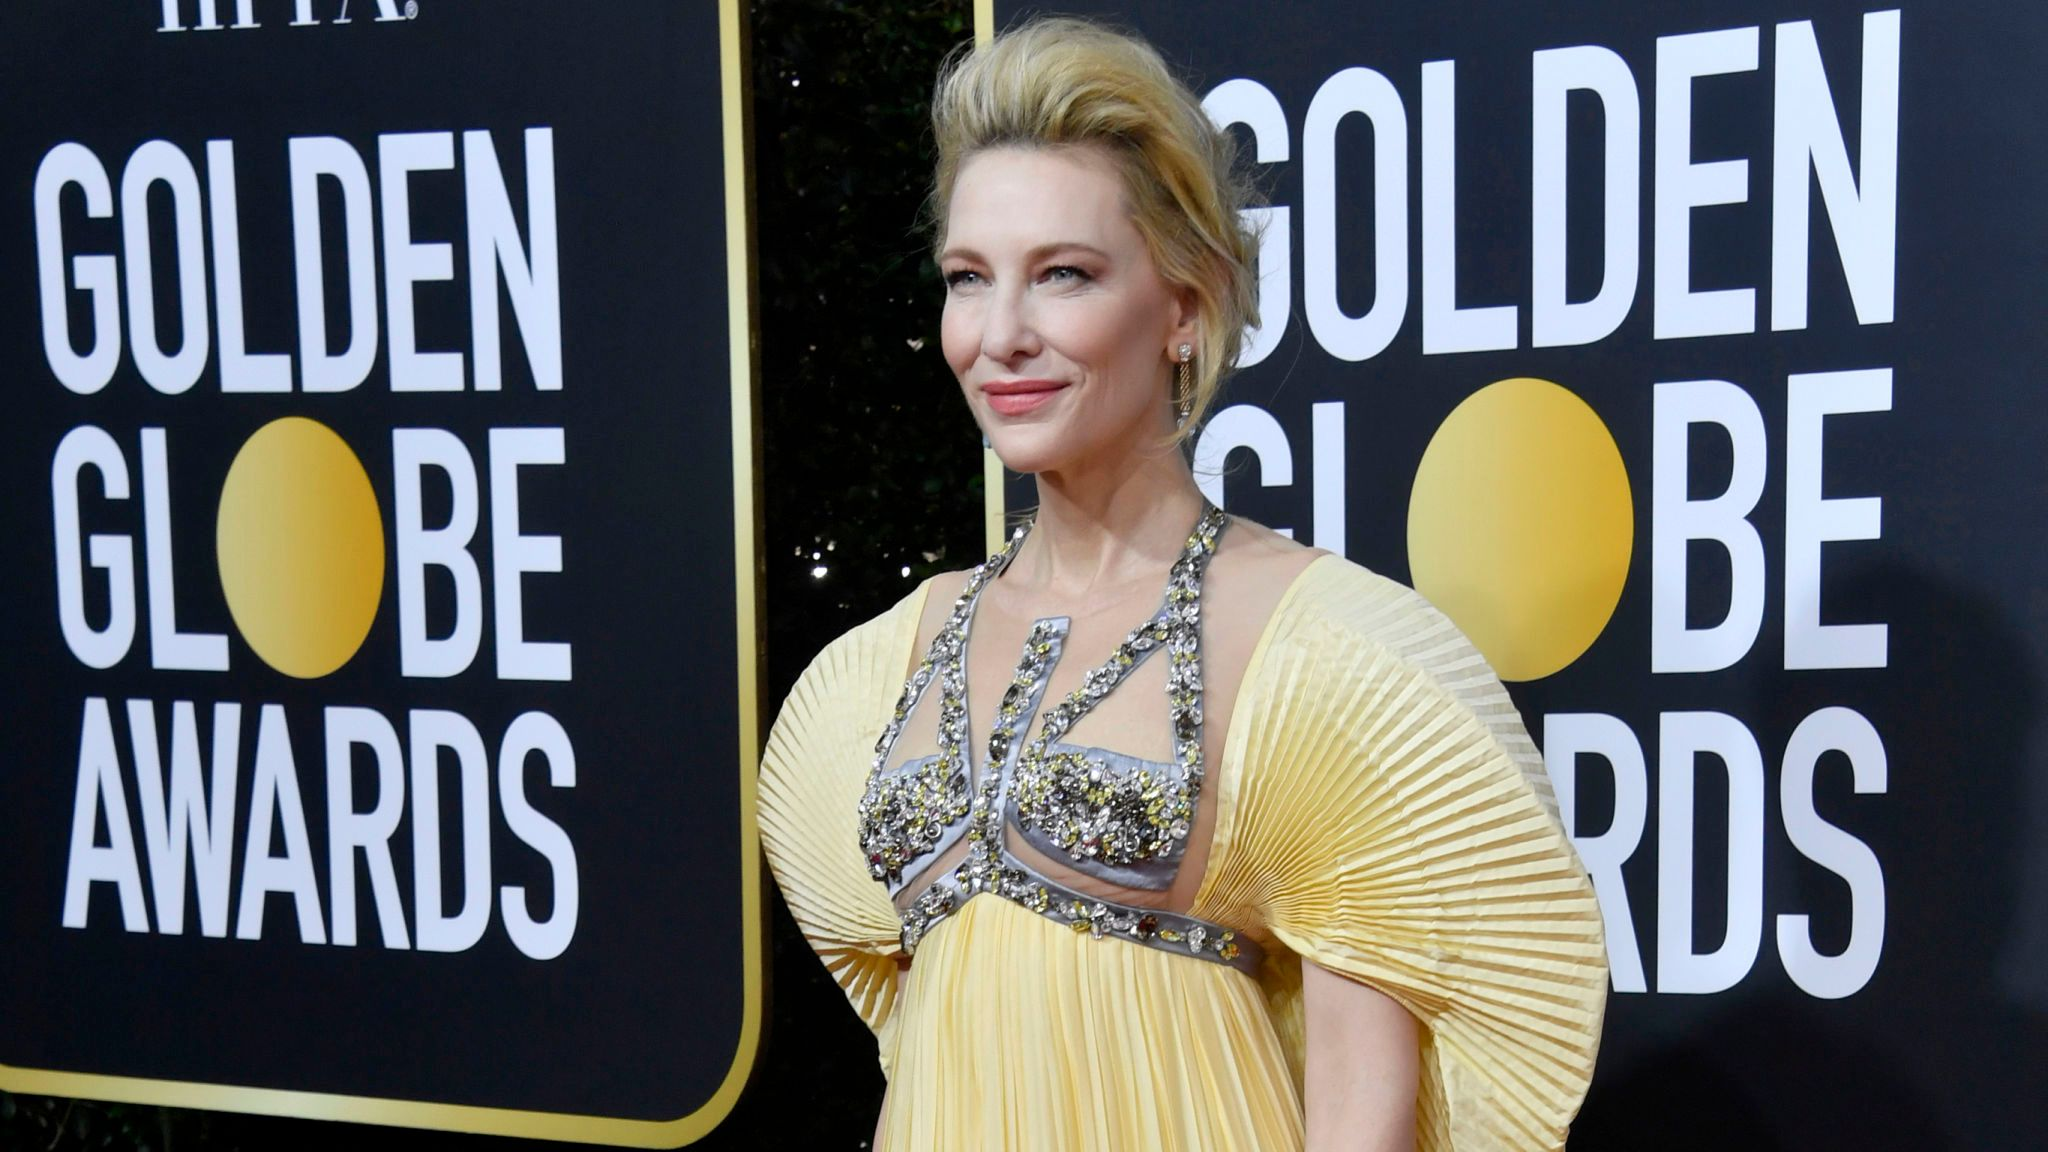 Cate Blanchett at the Golden Globes 2020